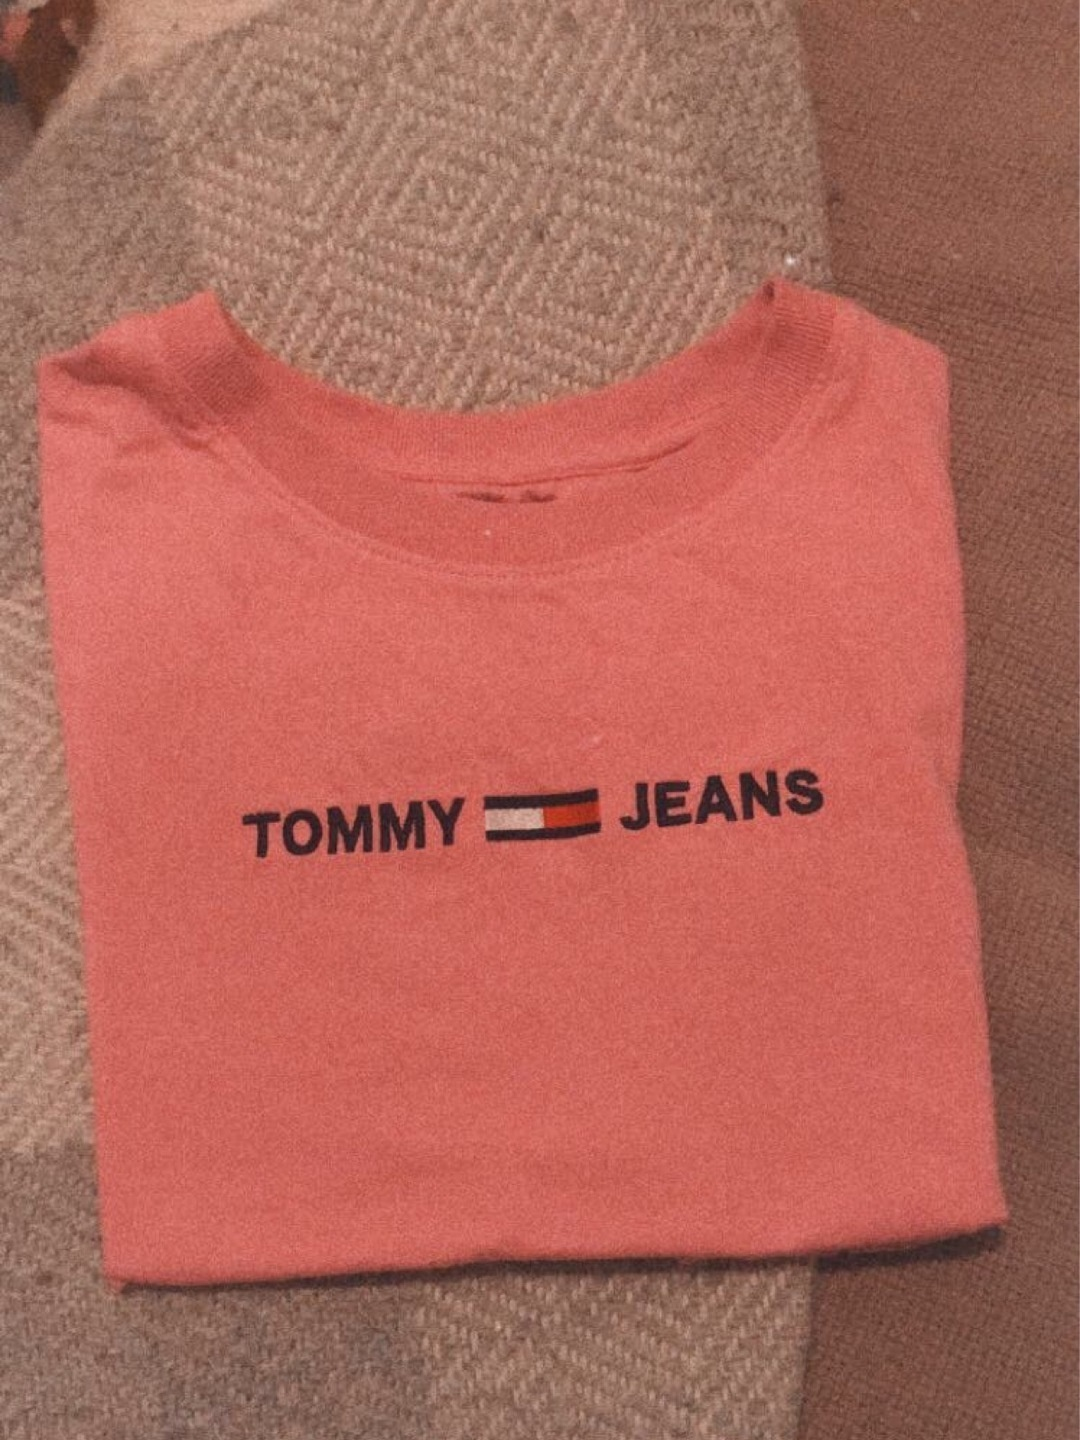 Damen tops & t-shirts - TOMMY JEANS photo 1